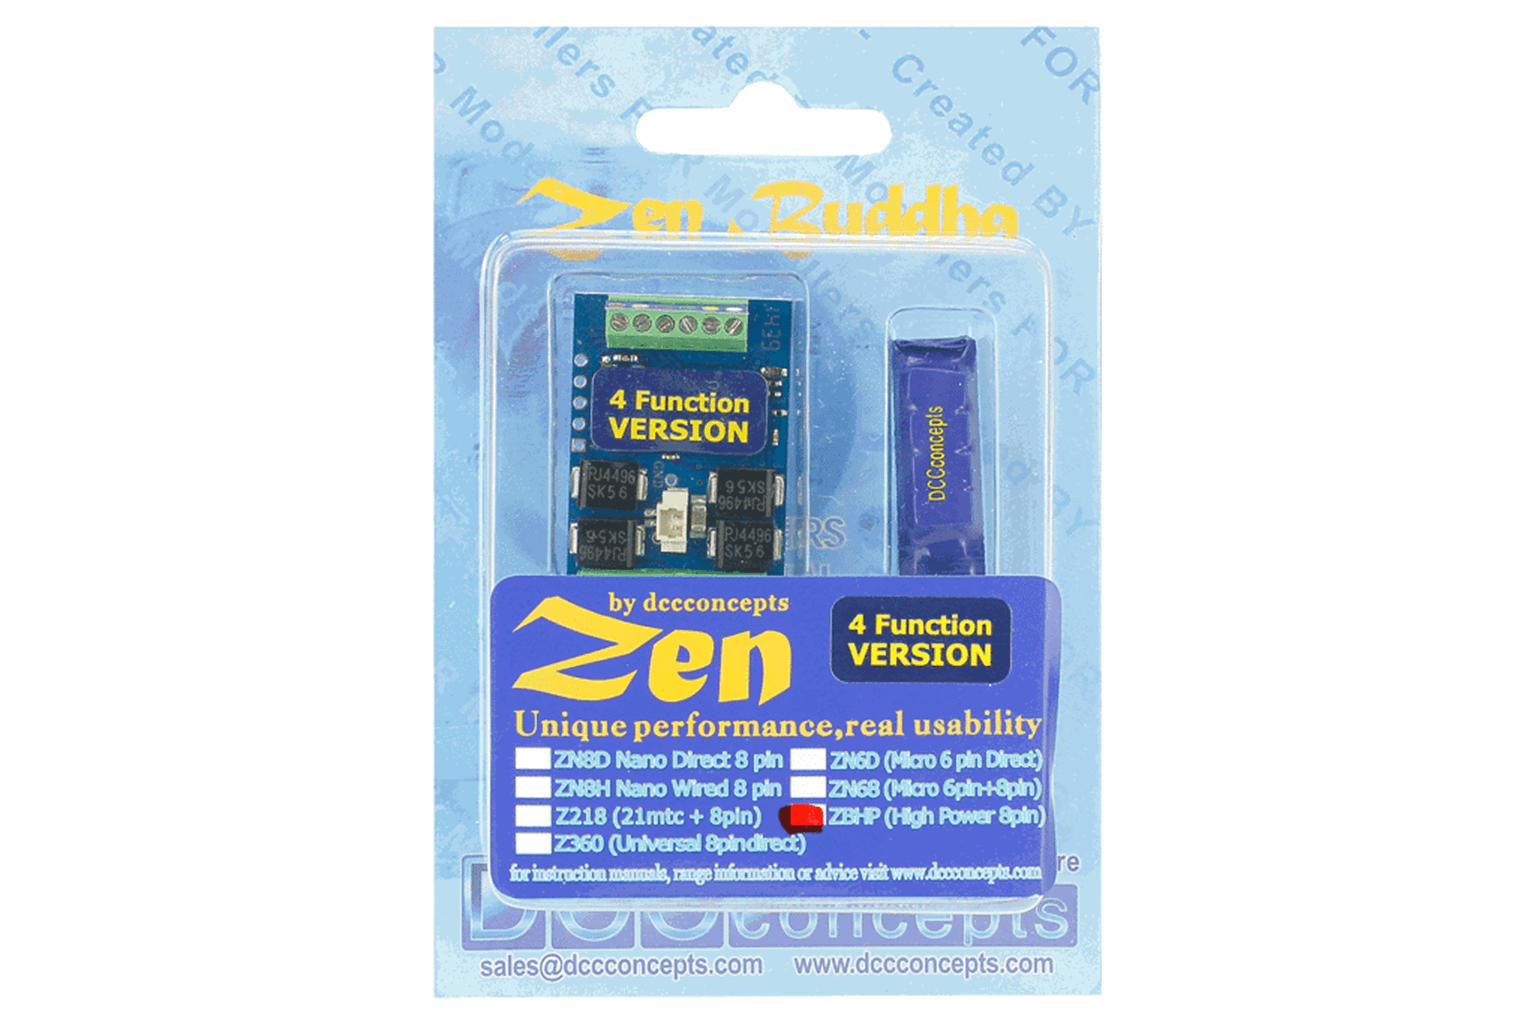 Zen Buddah 4 Function 3a Decoder with Stay Alive